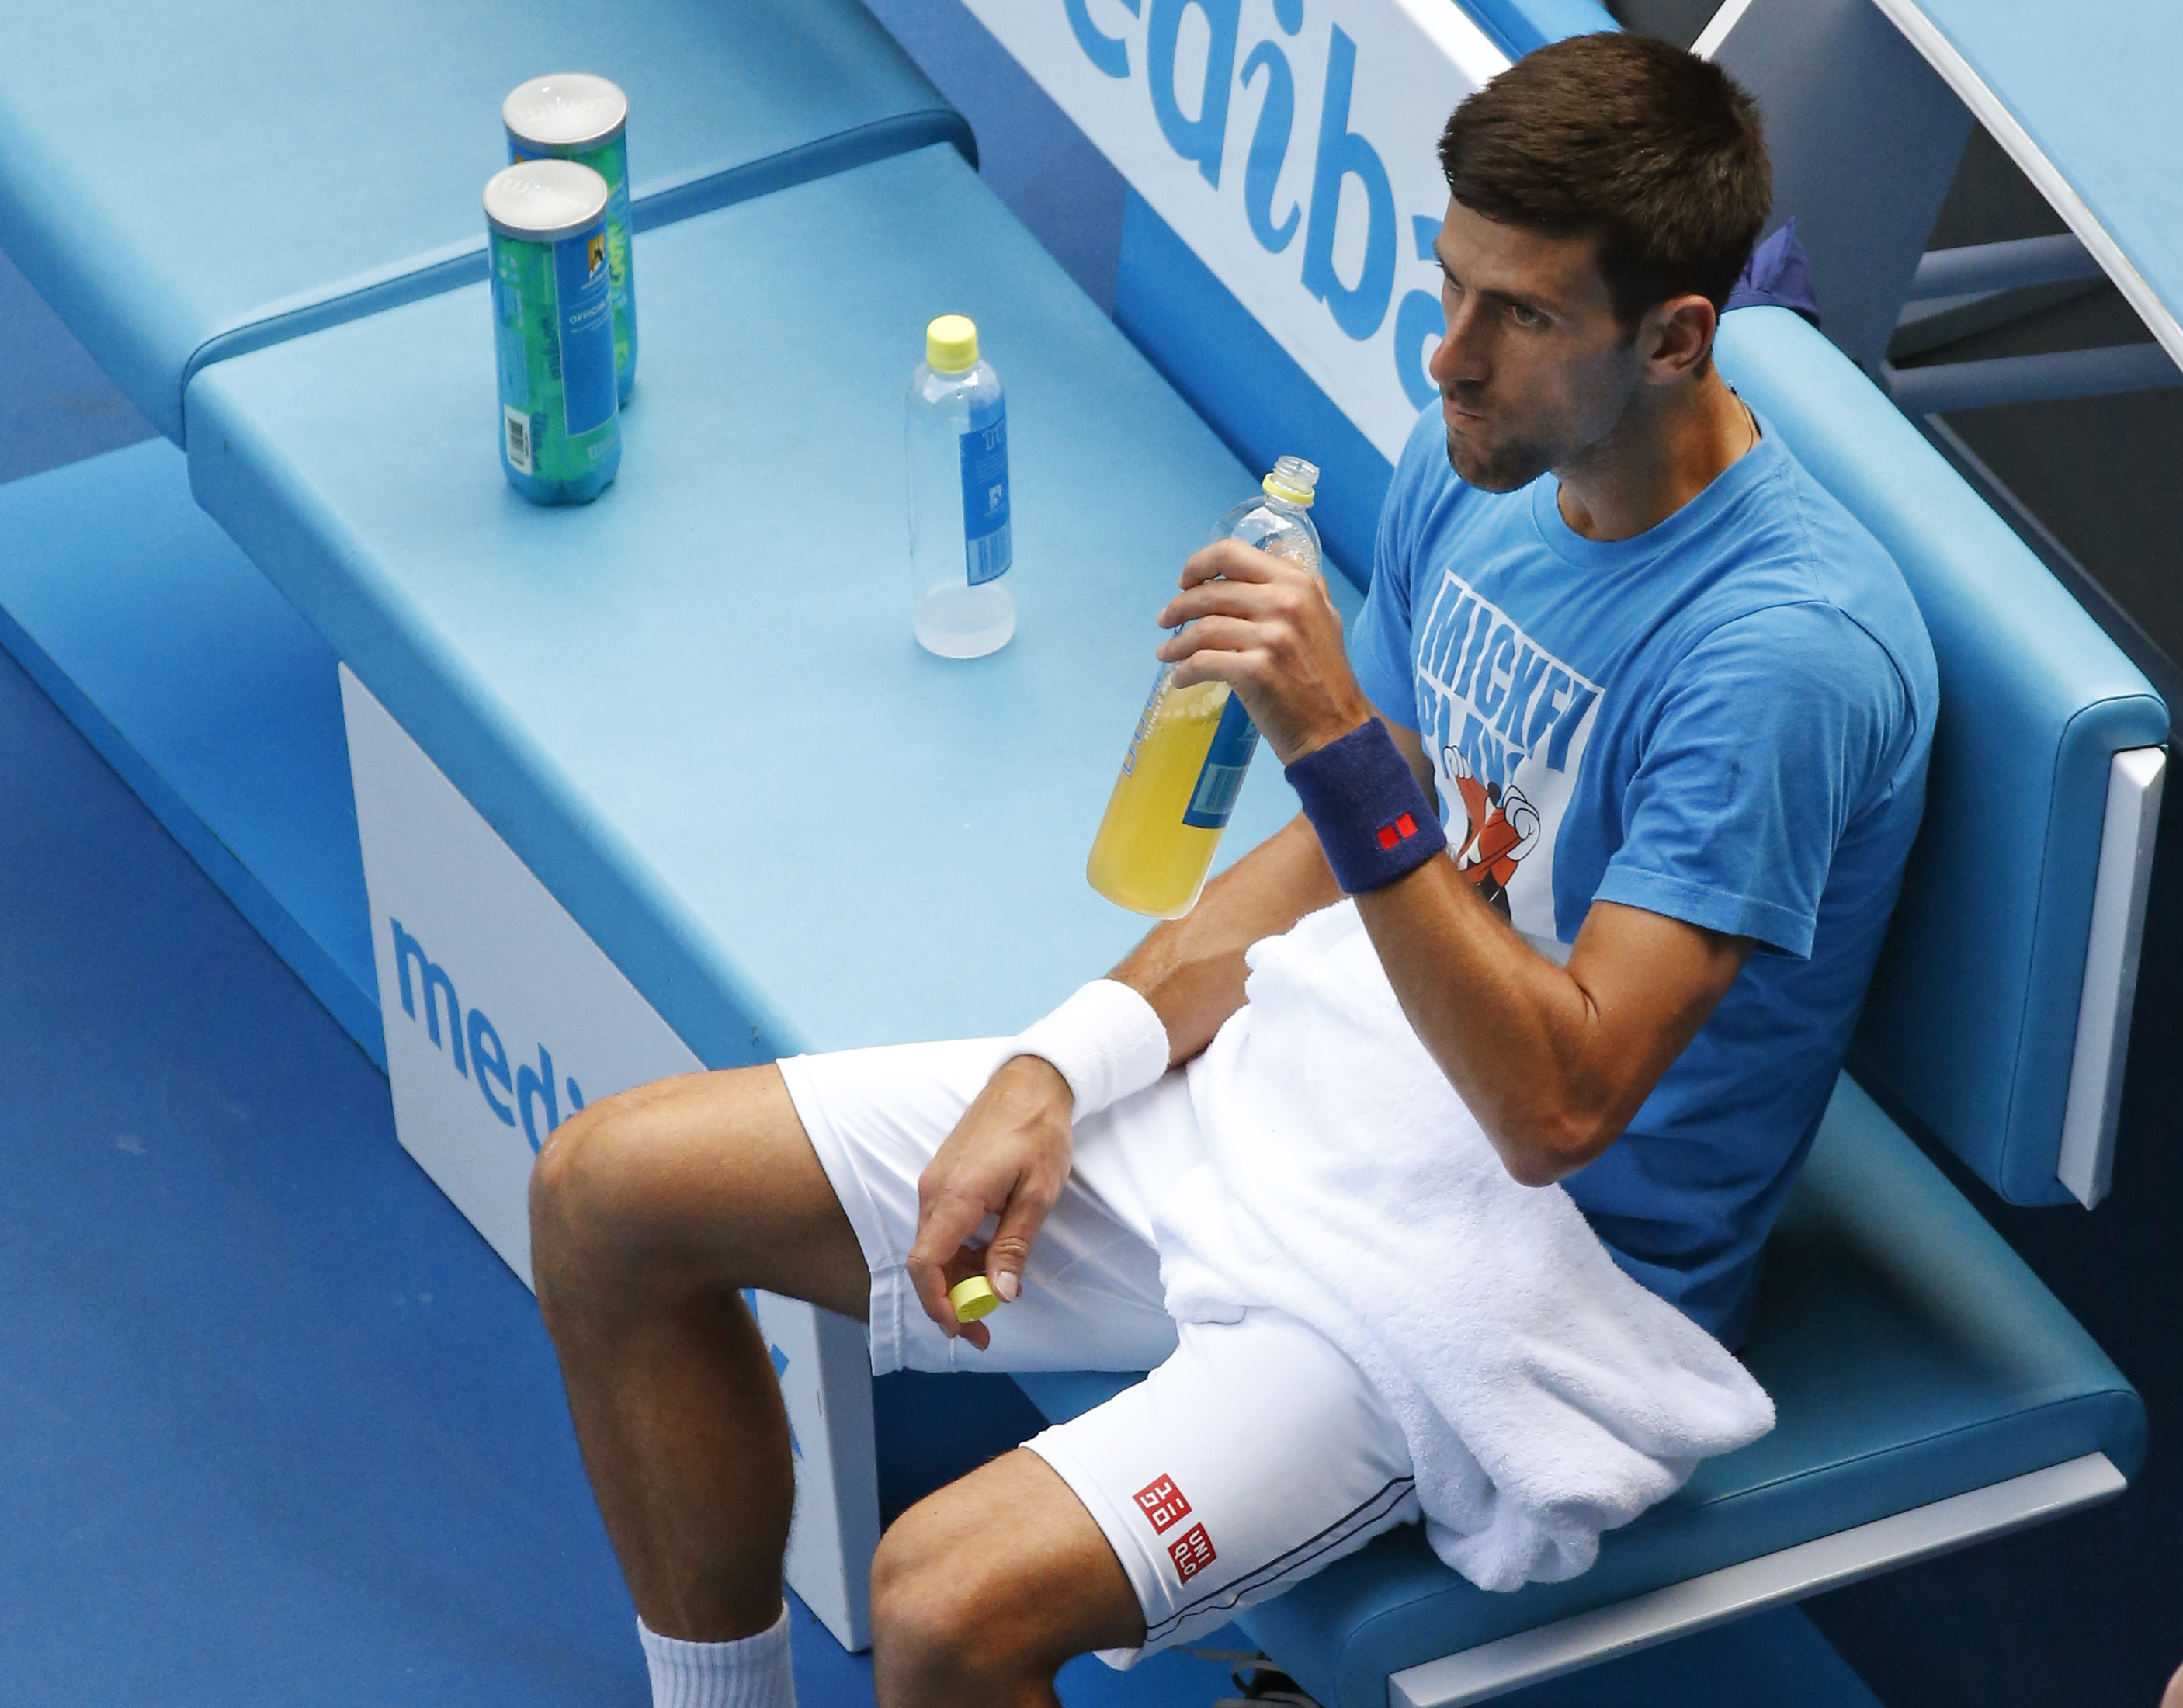 Serbia's Novak Djokovic takes a drink during a practice session ahead of the men's singles final at the Australian Open tennis championships in Melbourne, Australia, Saturday, Jan. 30, 2016. Djokovic will play Britain's Andy Murray on Sunday Jan. 31. (AP